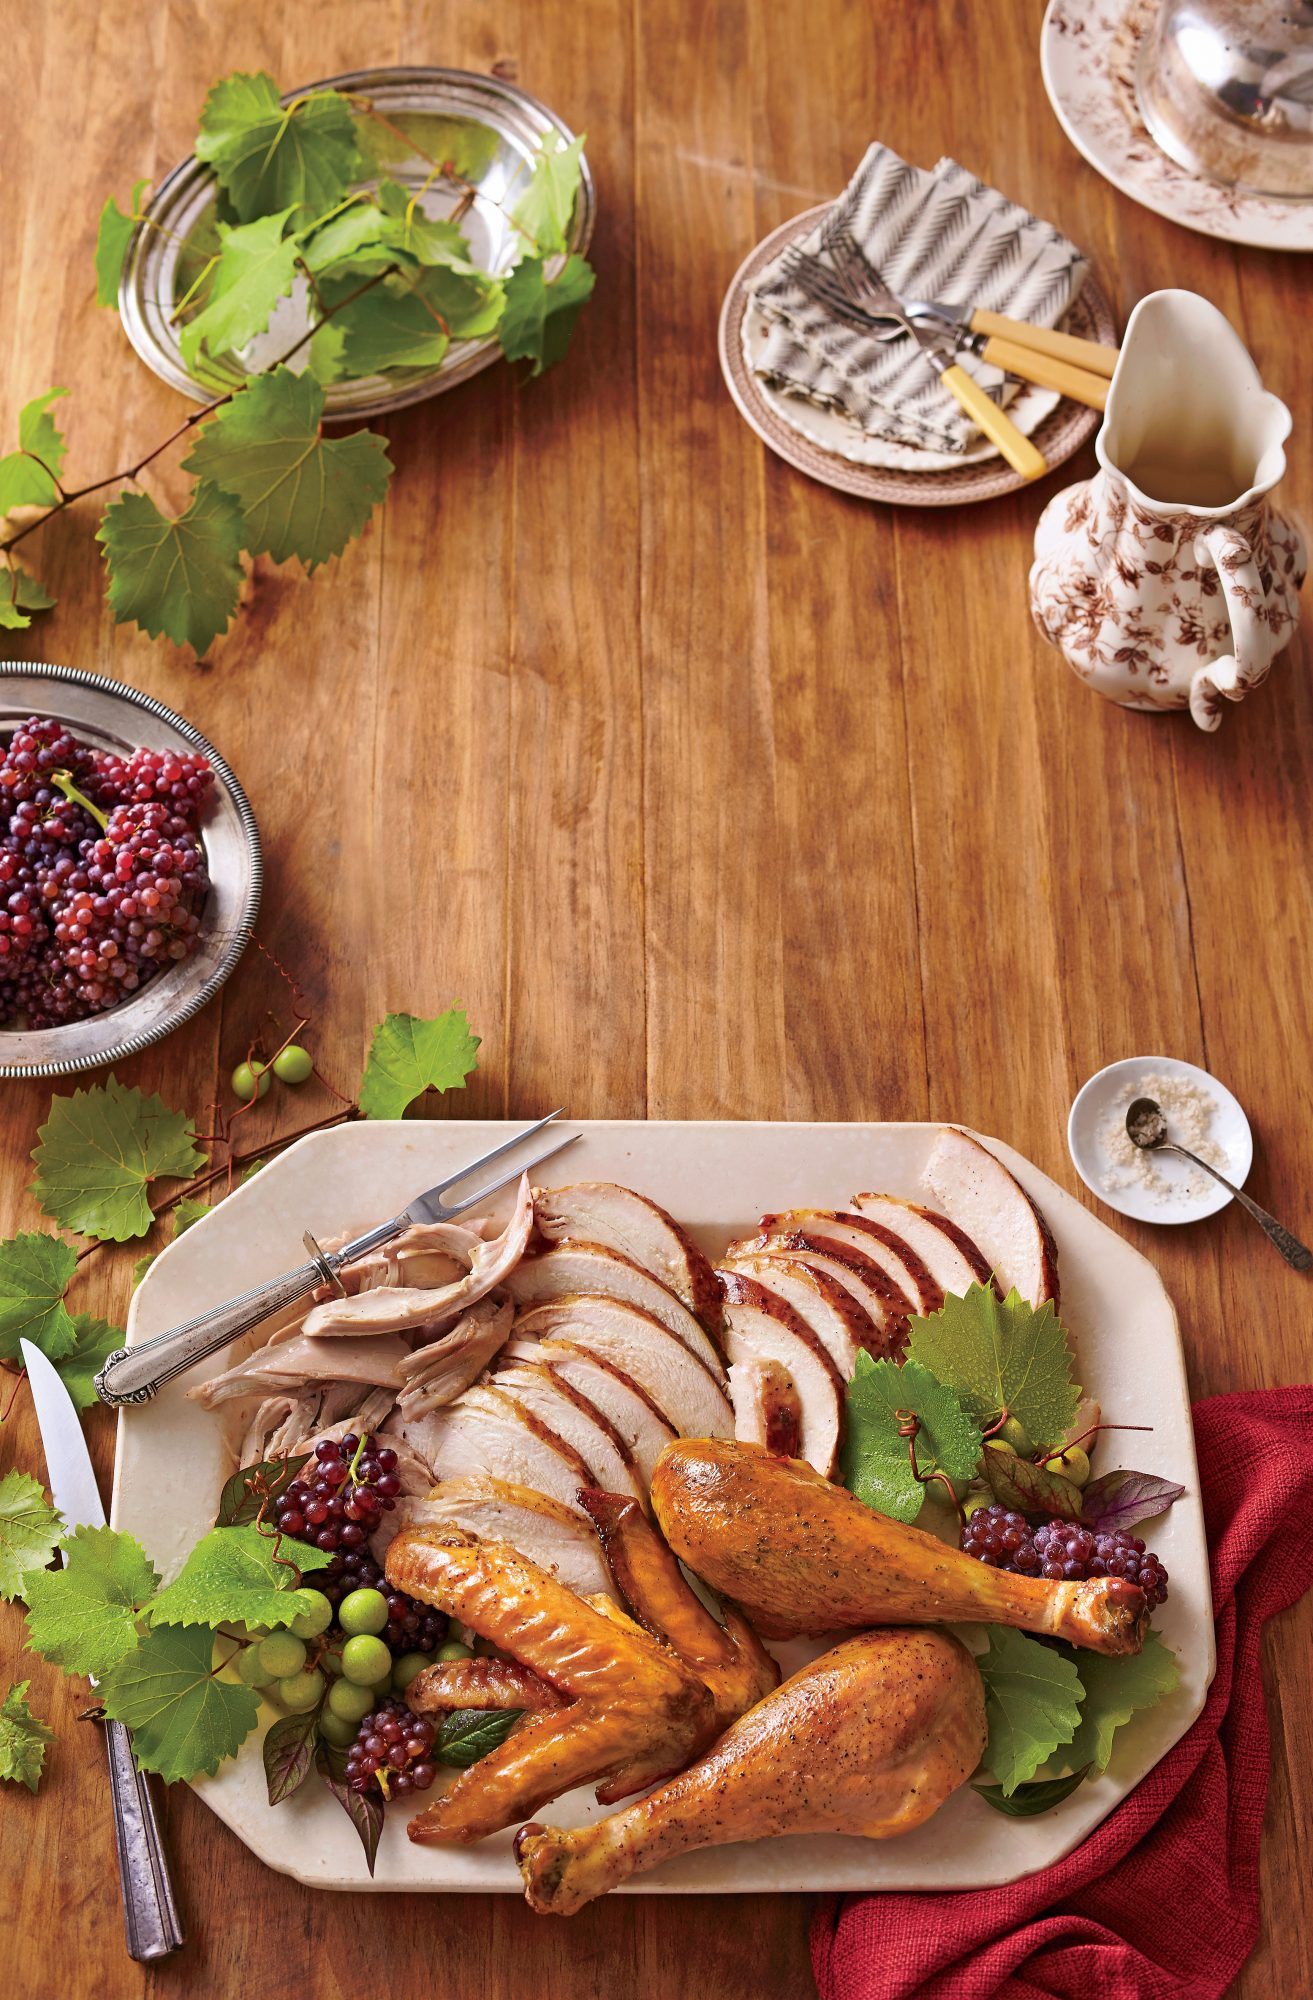 Smoked Self-Basting Turkey Recipe